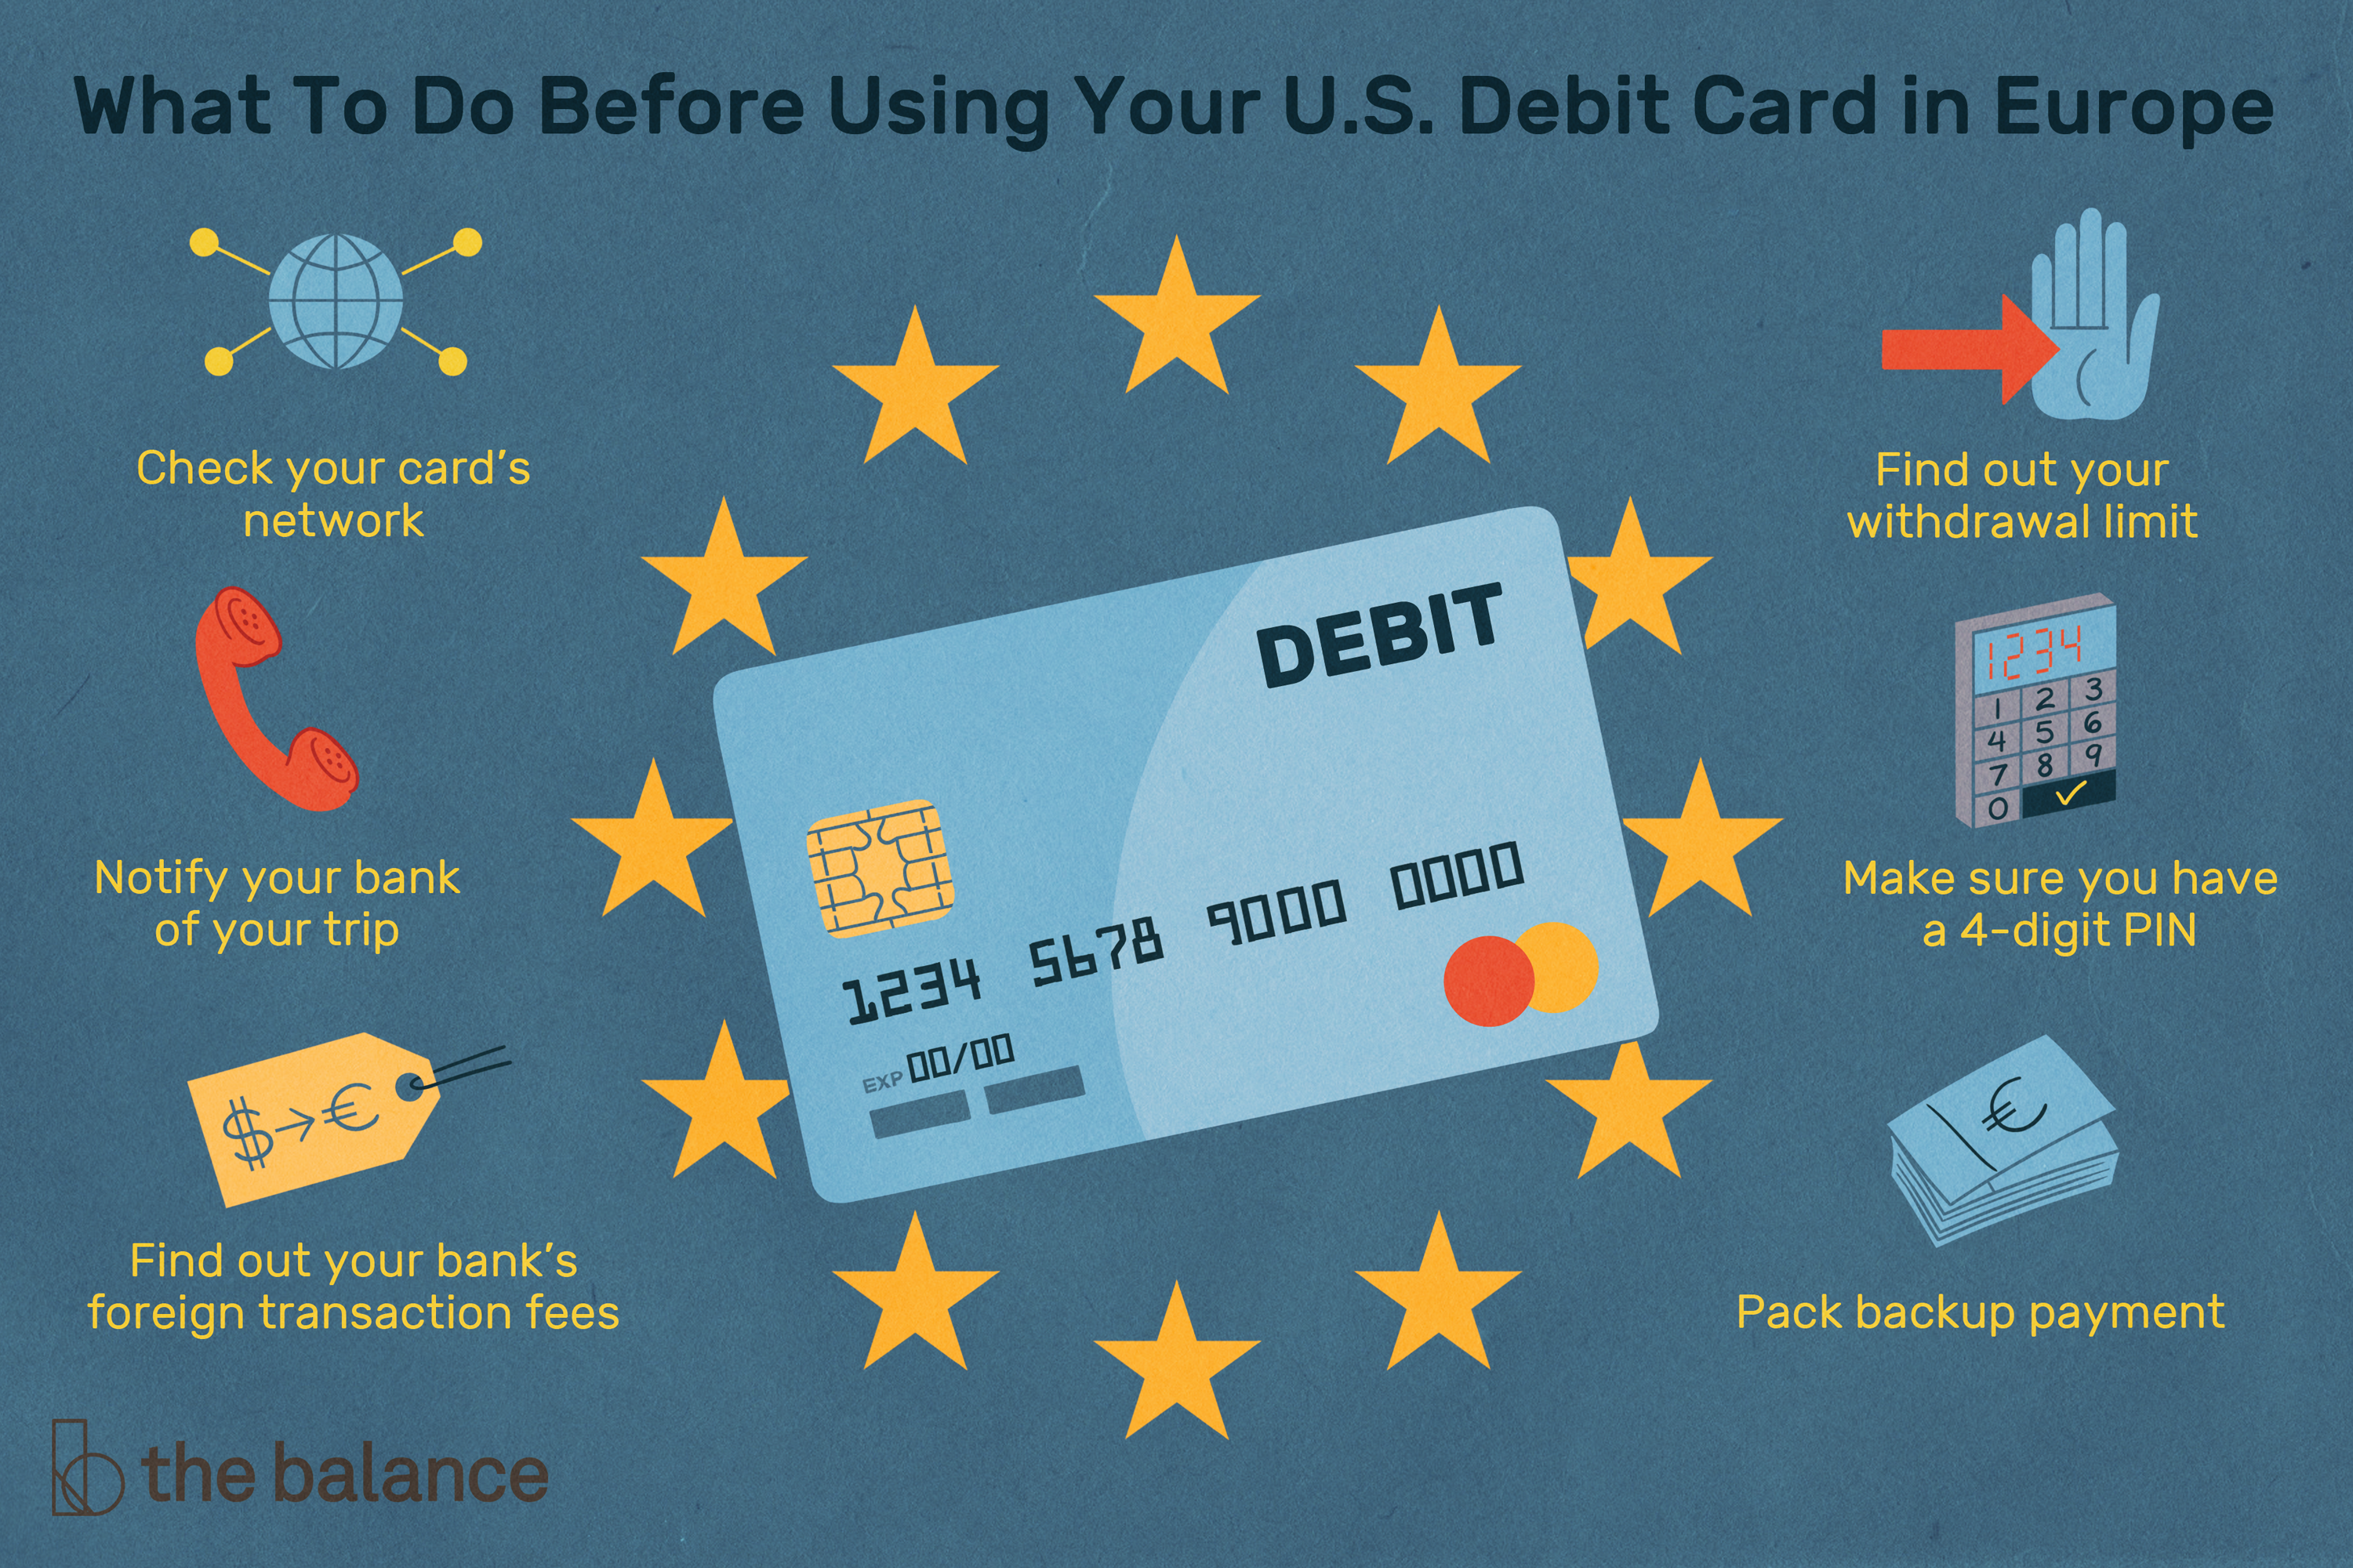 8 Simple Rules For Using Your Debit Card In Europe